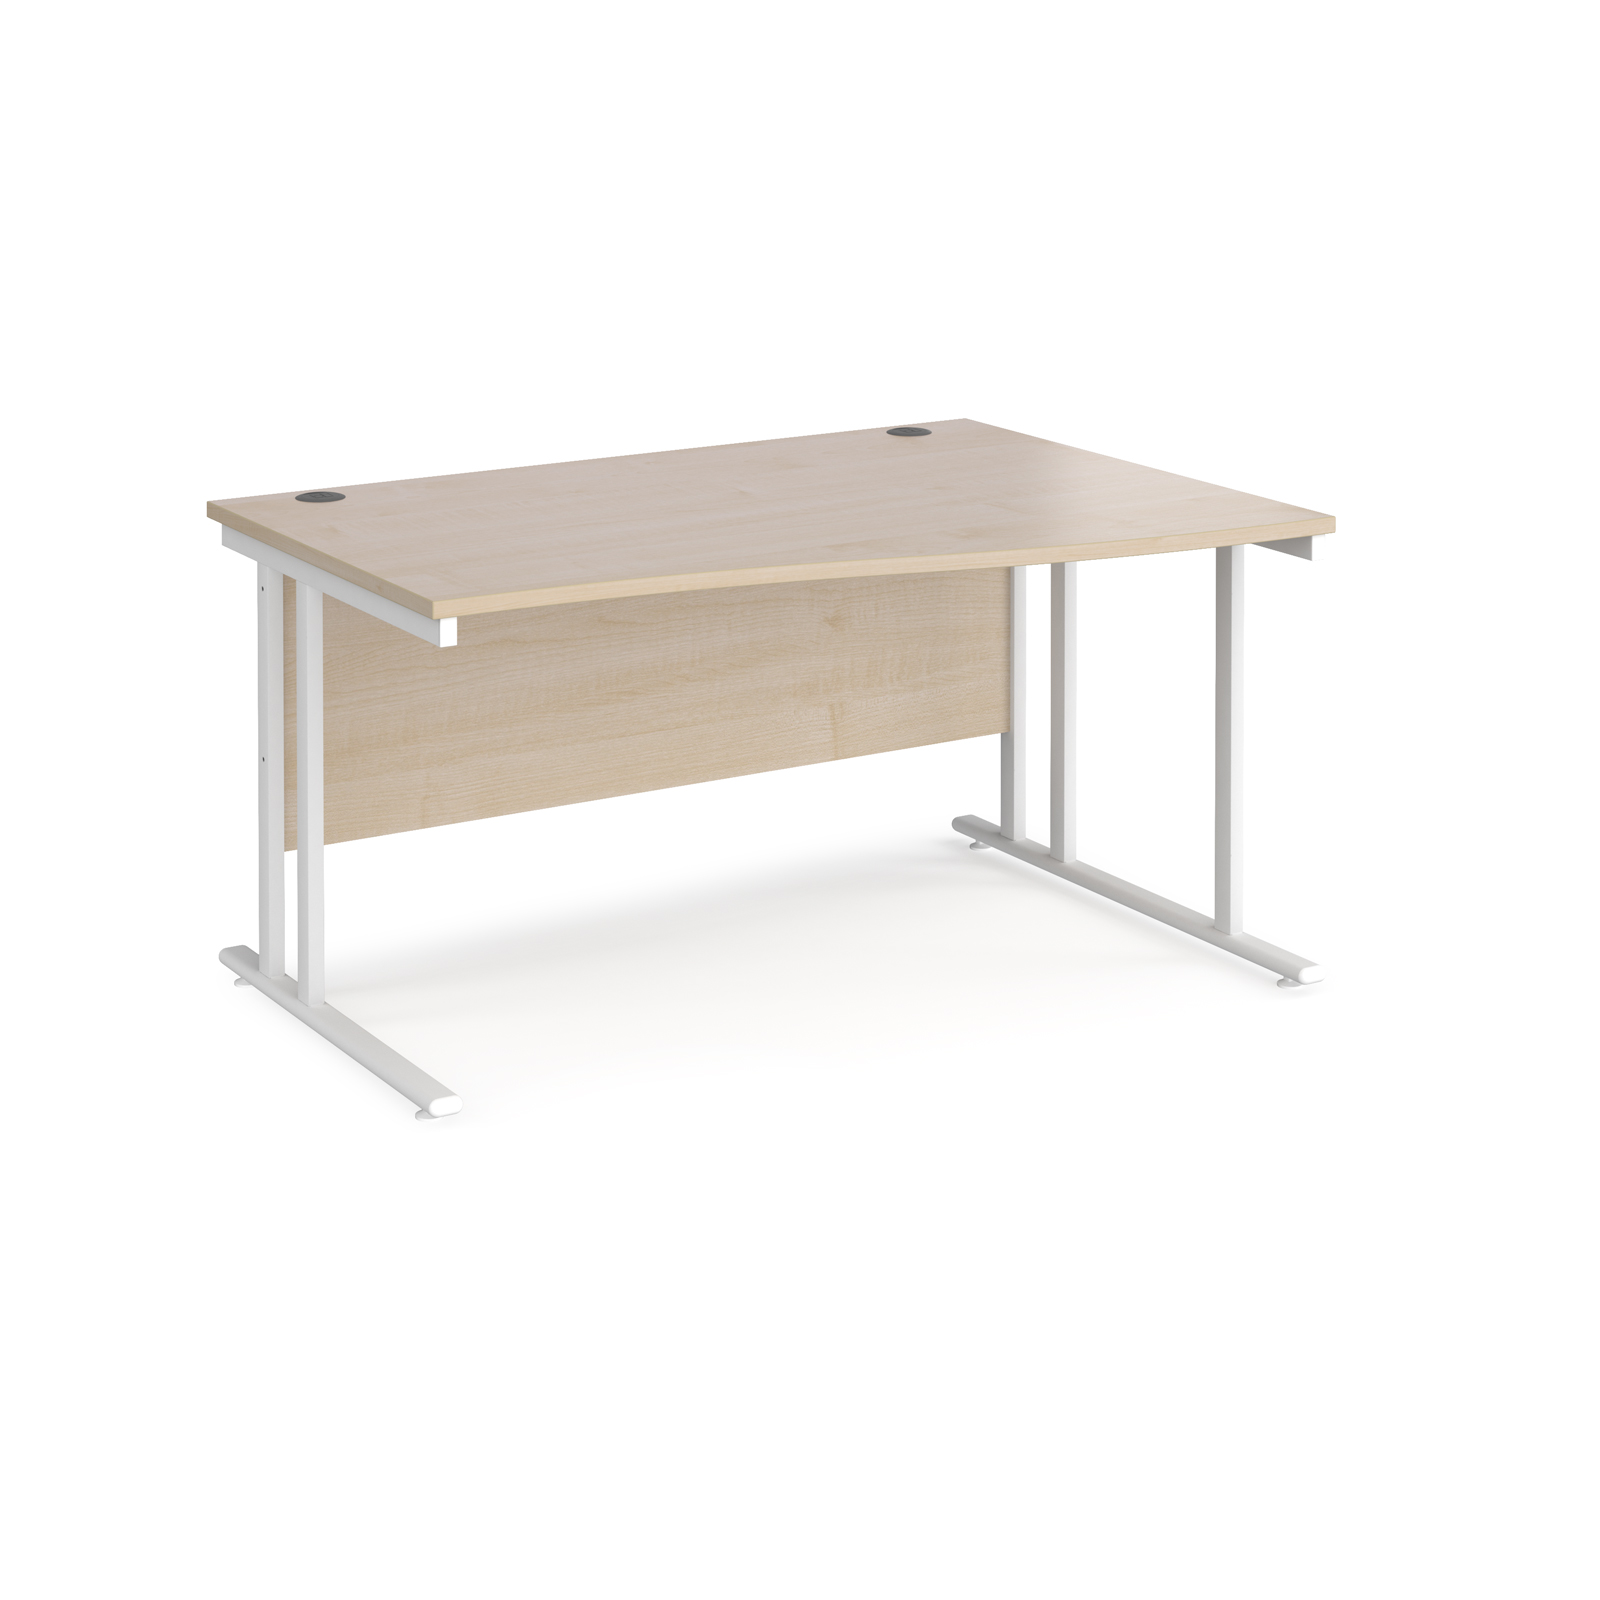 Maestro 25 right hand wave desk 1400mm wide - white cantilever leg frame, maple top